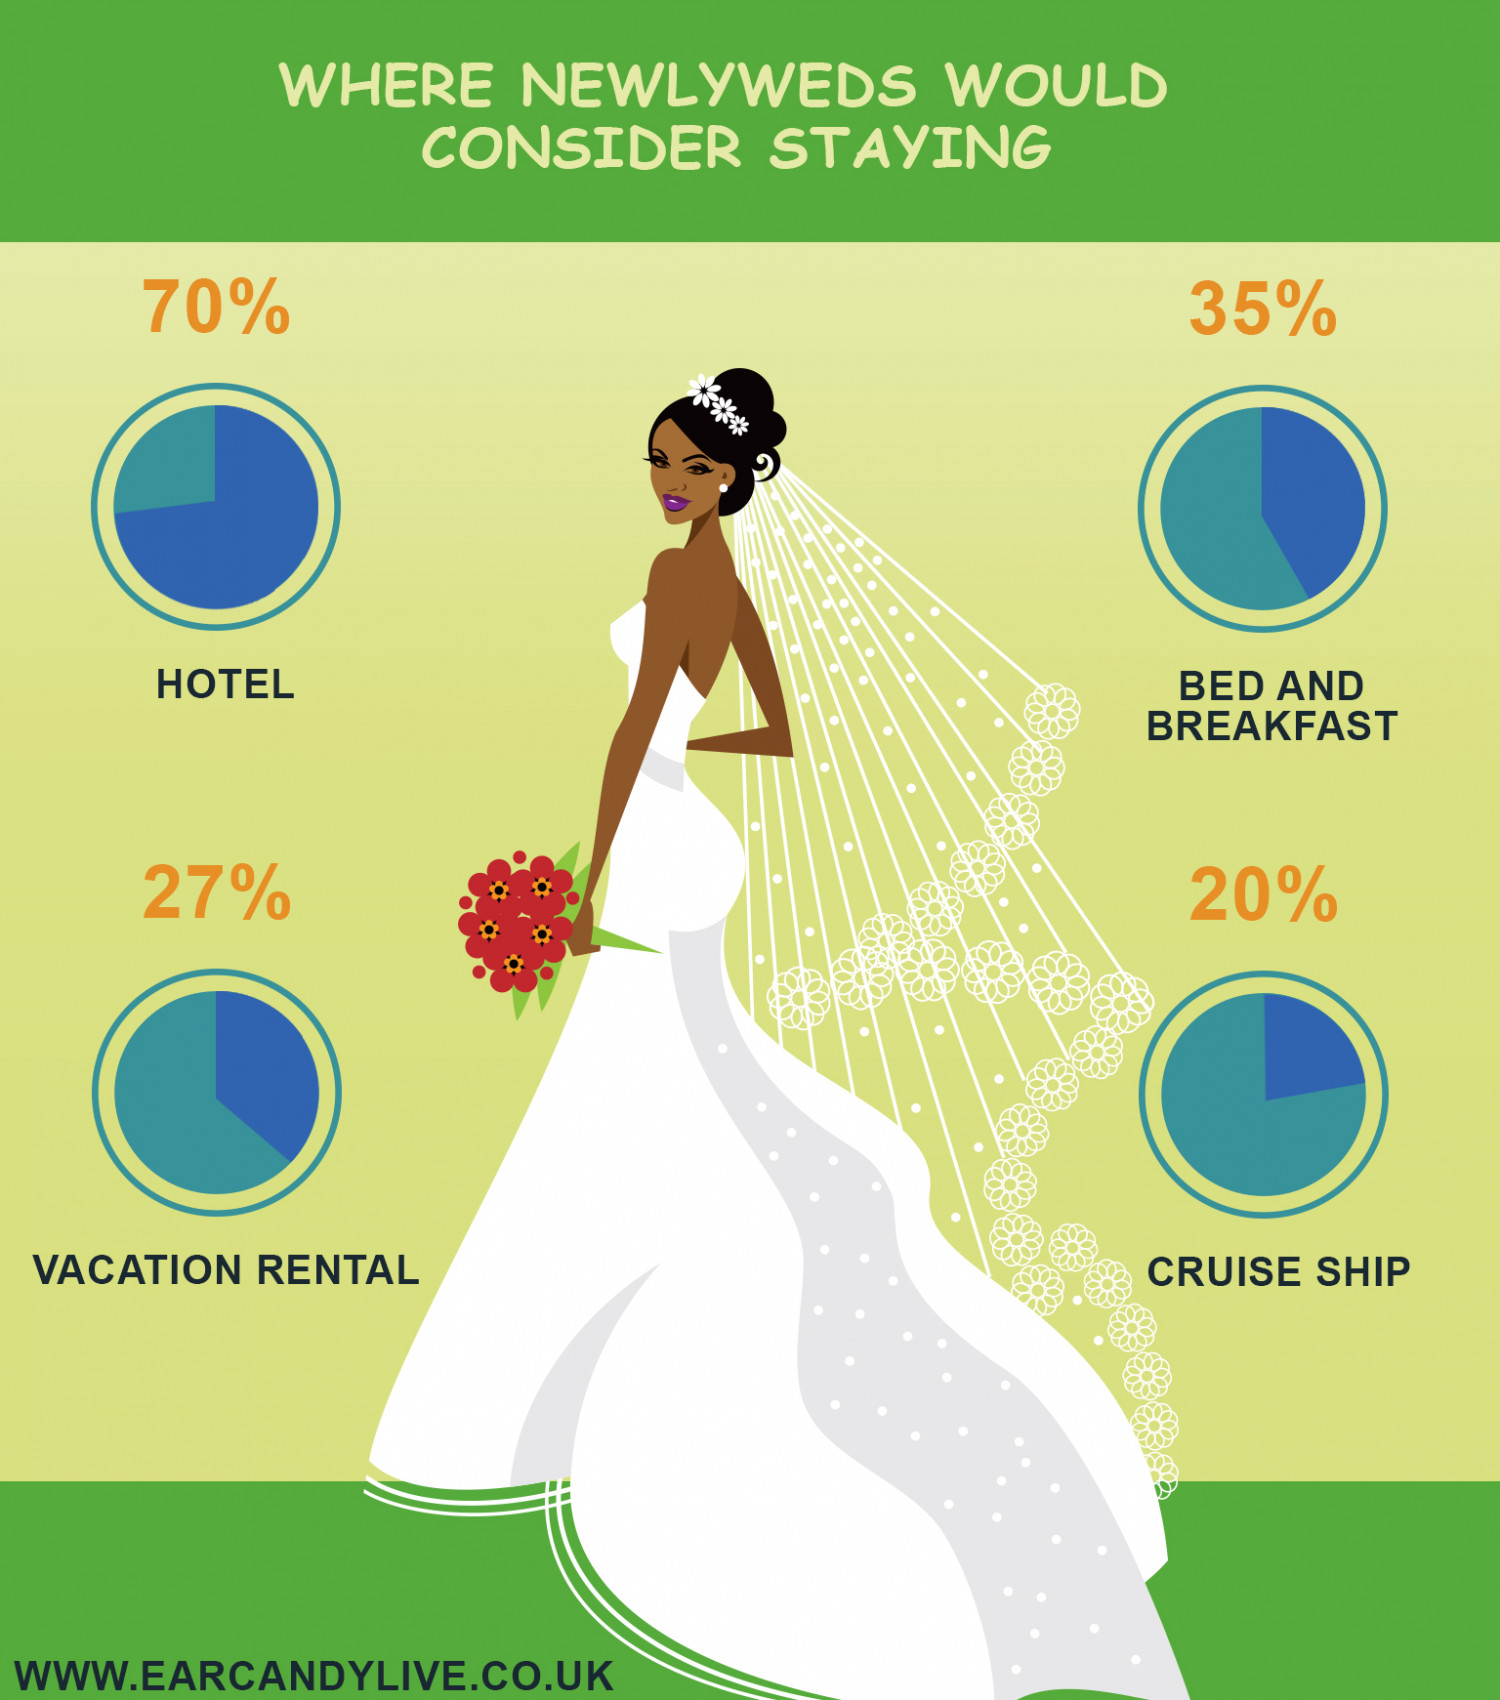 Where are you going to stay on your honeymoon? Infographic